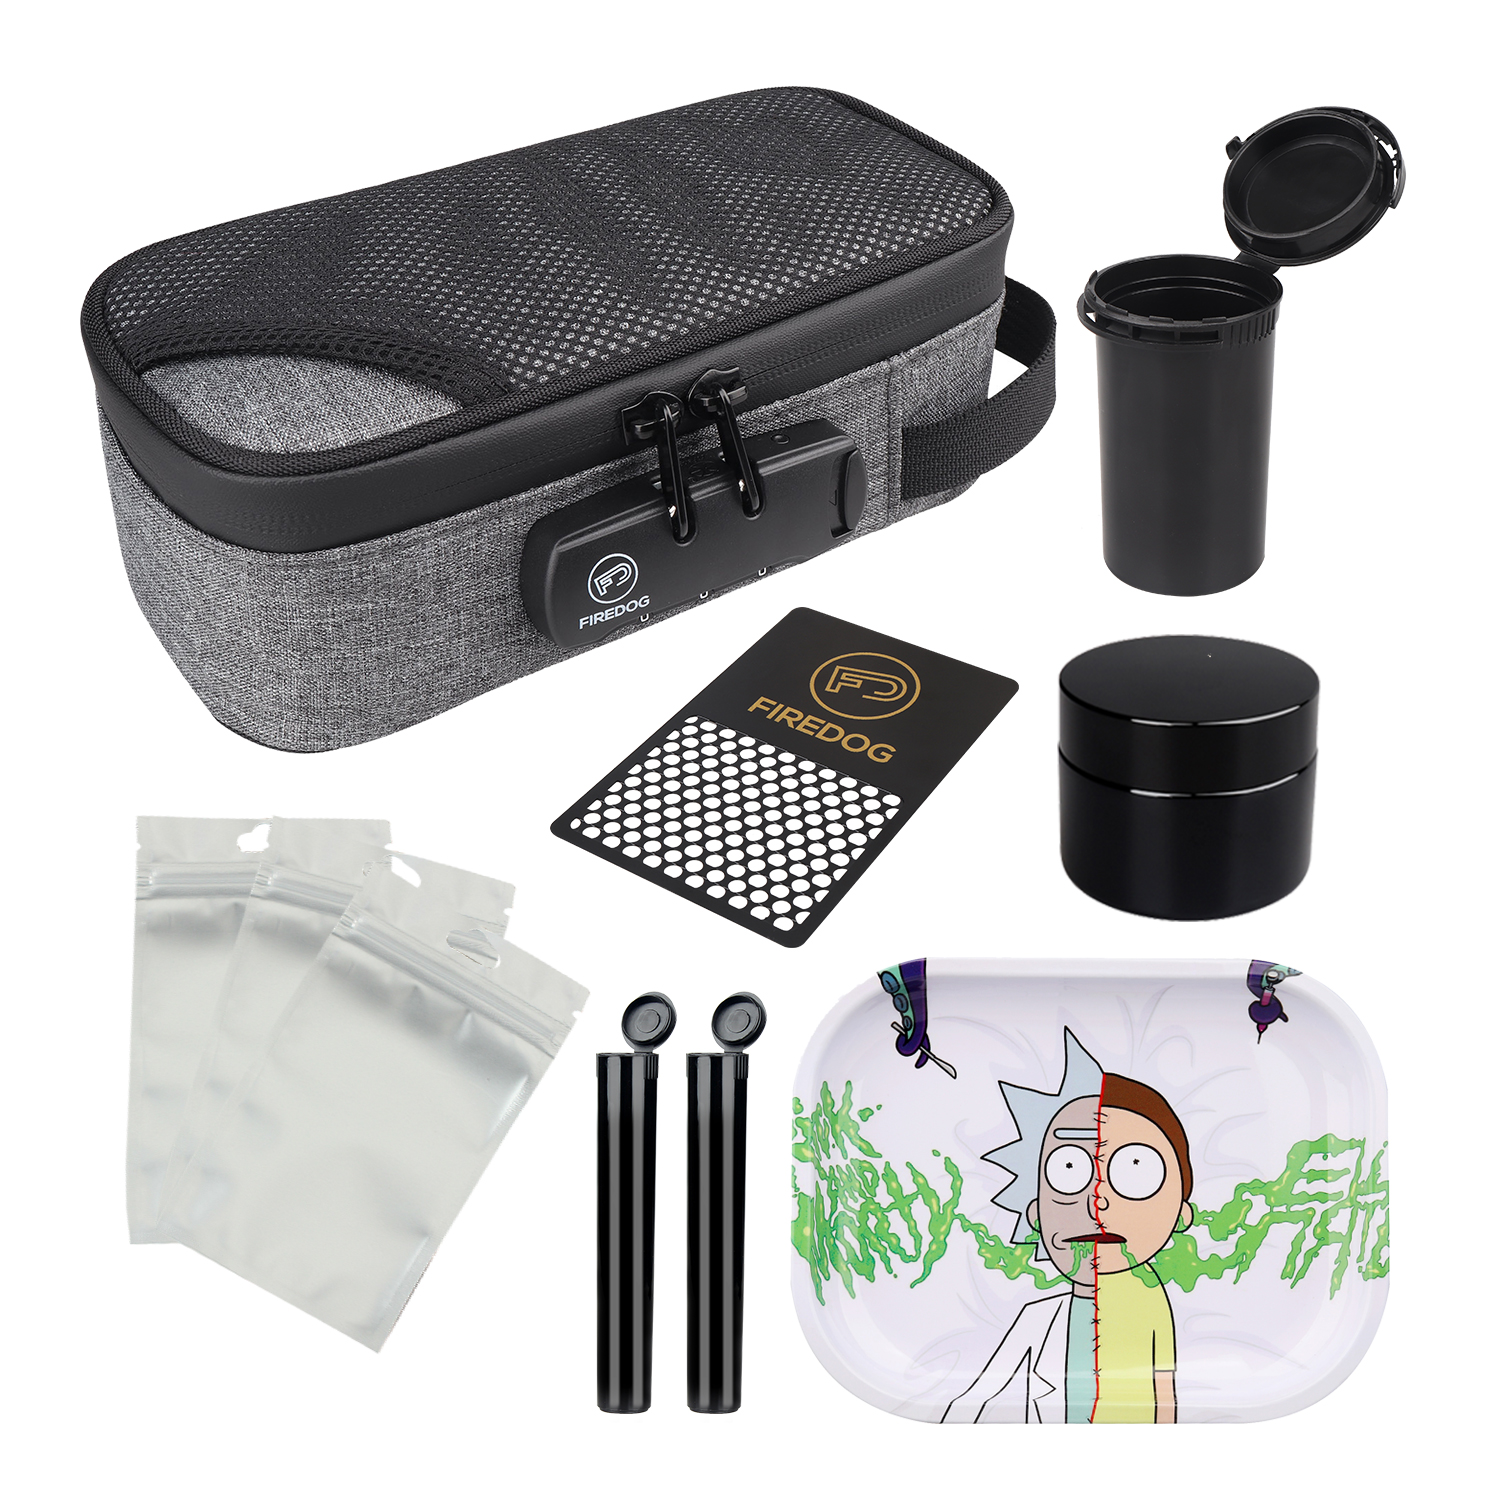 FIREDOG Smoking Smell Proof Case with Lock Kit  Stash Case with Rolling Tray Tobacco Cigarettes Bag Set 1